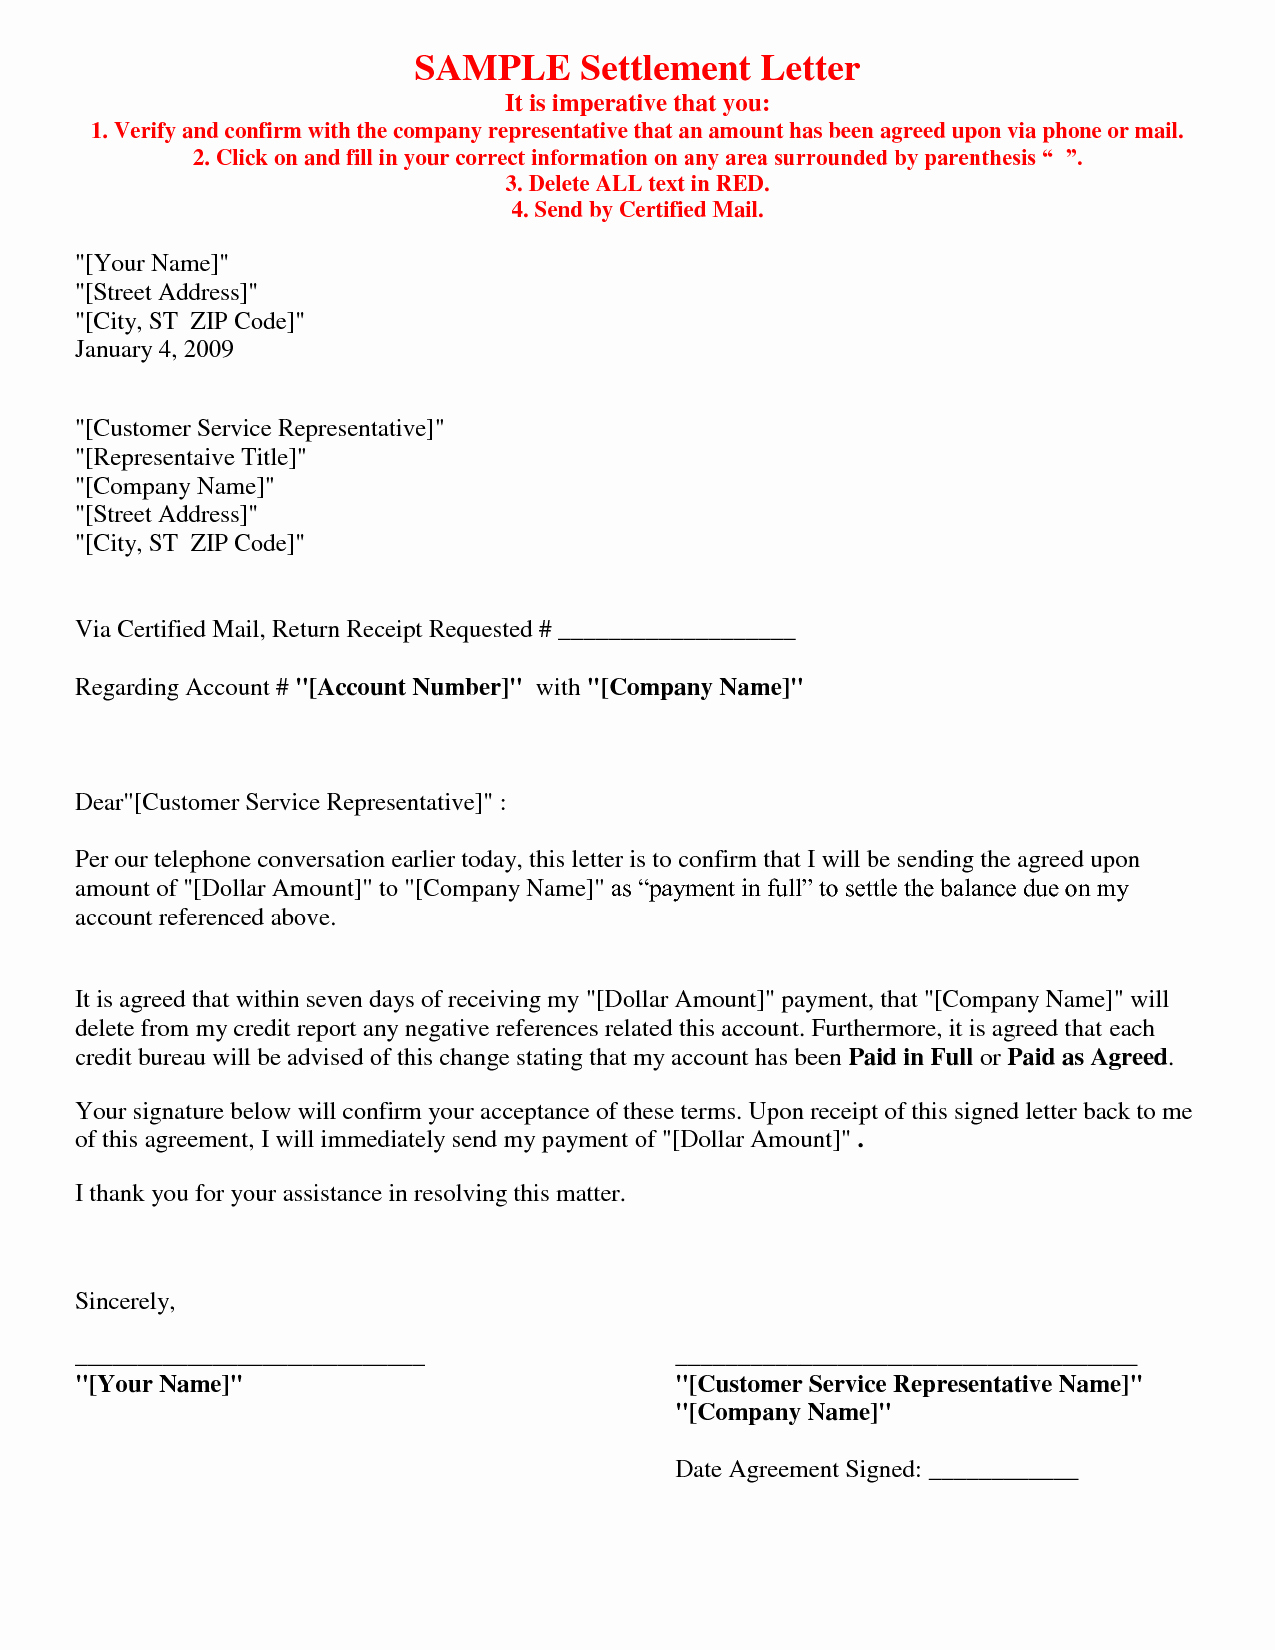 Letter Of Agreement Template New Picture 5 Of 17 Debt Settlement Agreement Letter